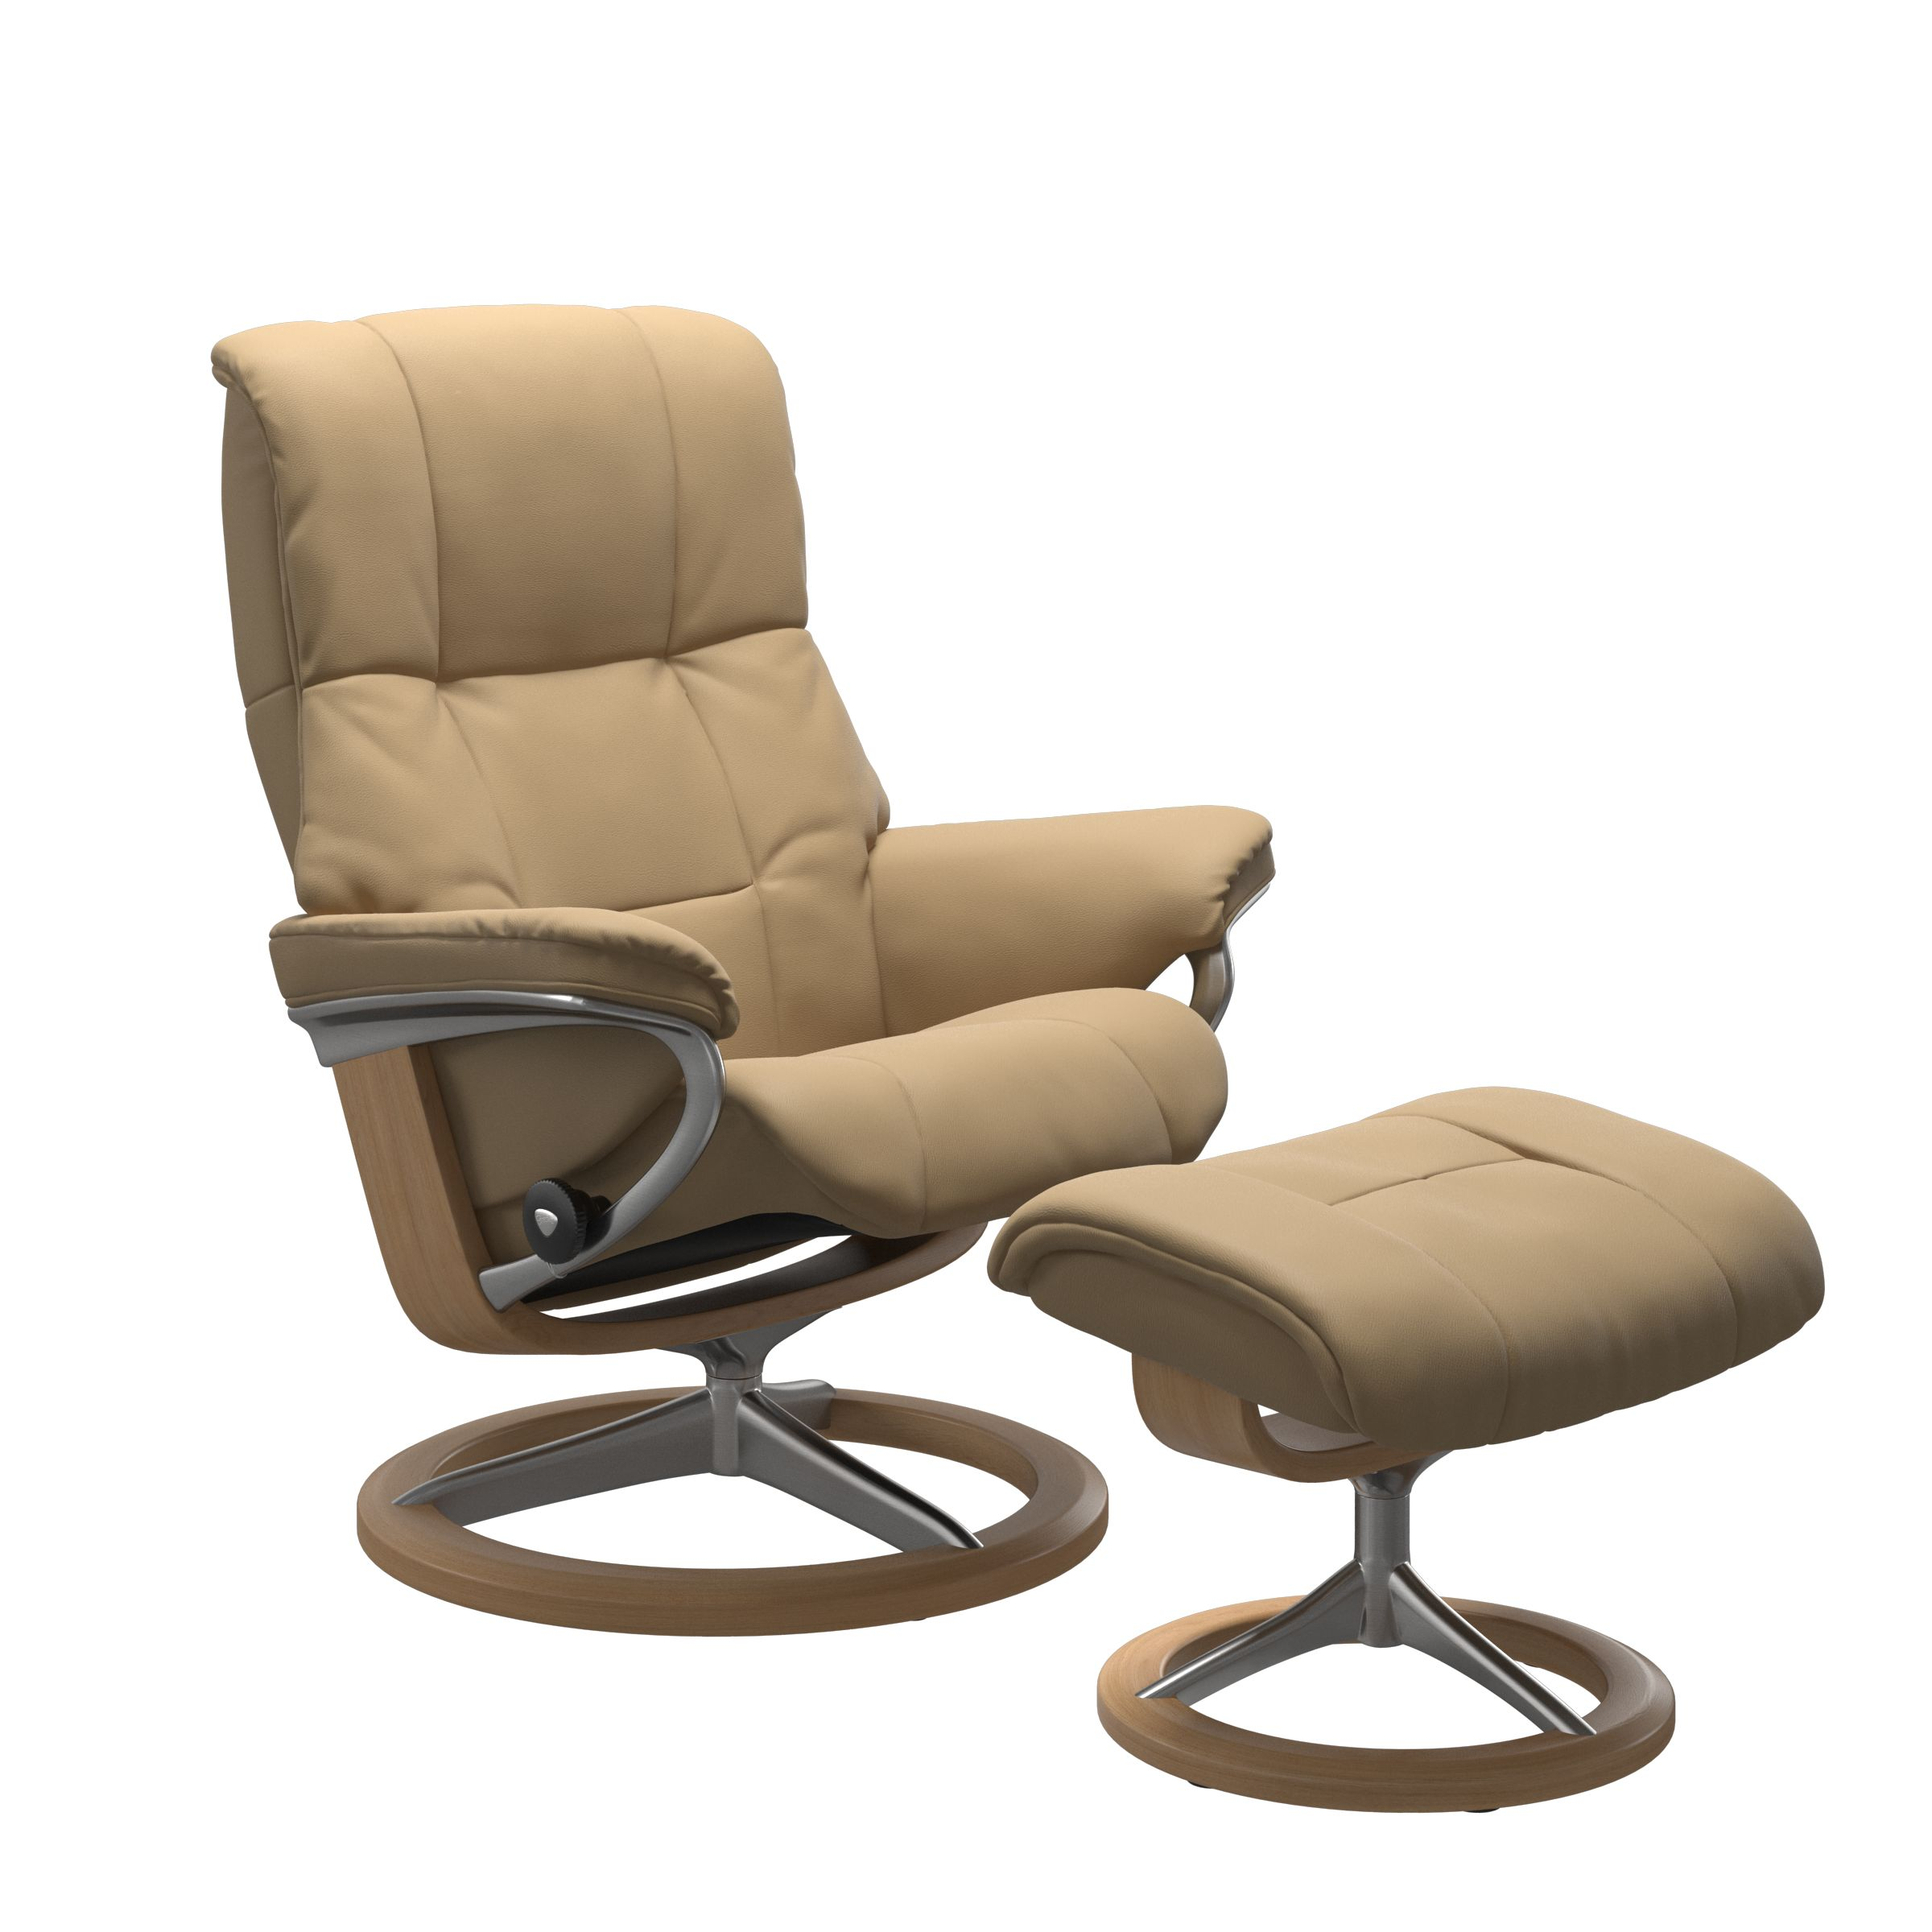 Stressless Mayfair Signature Sand Recliner & Stool